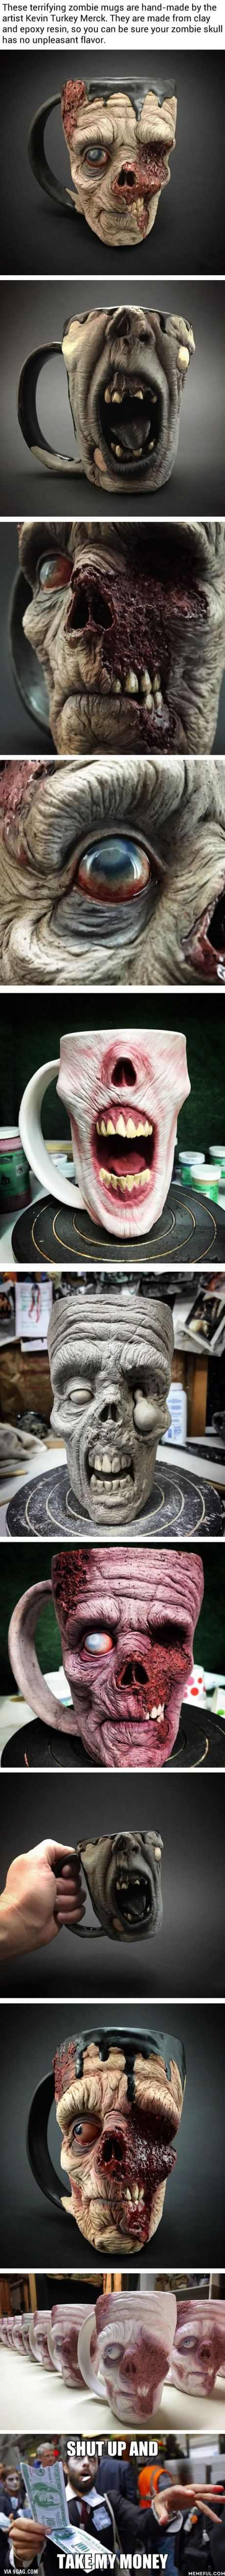 You Can Now Drink Your Morning Coffee From A Zombie Head